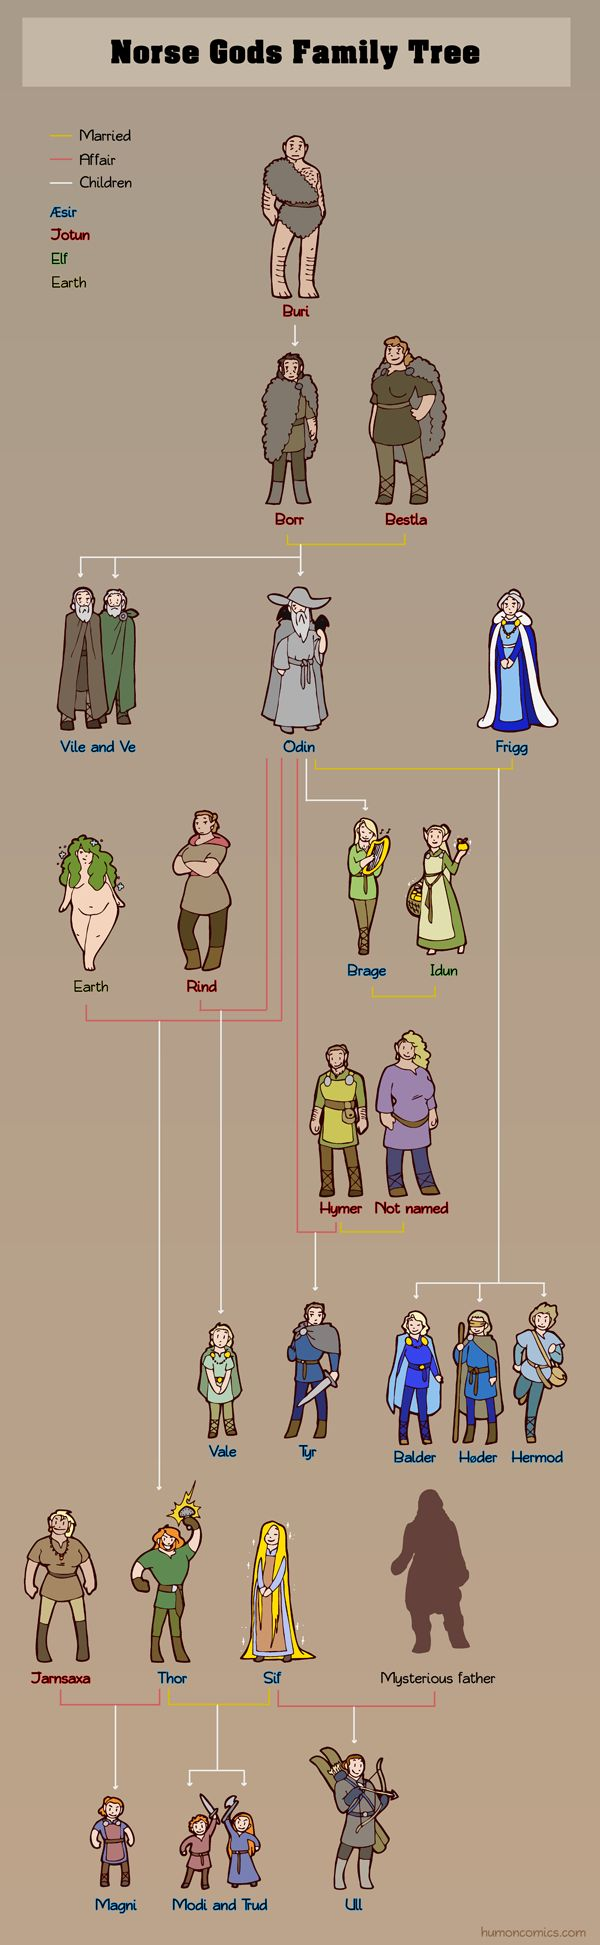 Norse Gods Family Tree by humon ancestry Odin Frigg Thor Sif chart | Create your own roleplaying game material w/ RPG Bard: www.rpgbard.com | Writing inspiration for Dungeons and Dragons DND D&D Pathfinder PFRPG Warhammer 40k Star Wars Shadowrun Call of Cthulhu Lord of the Rings LoTR + d20 fantasy science fiction scifi horror design | Not Trusty Sword art: click artwork for source